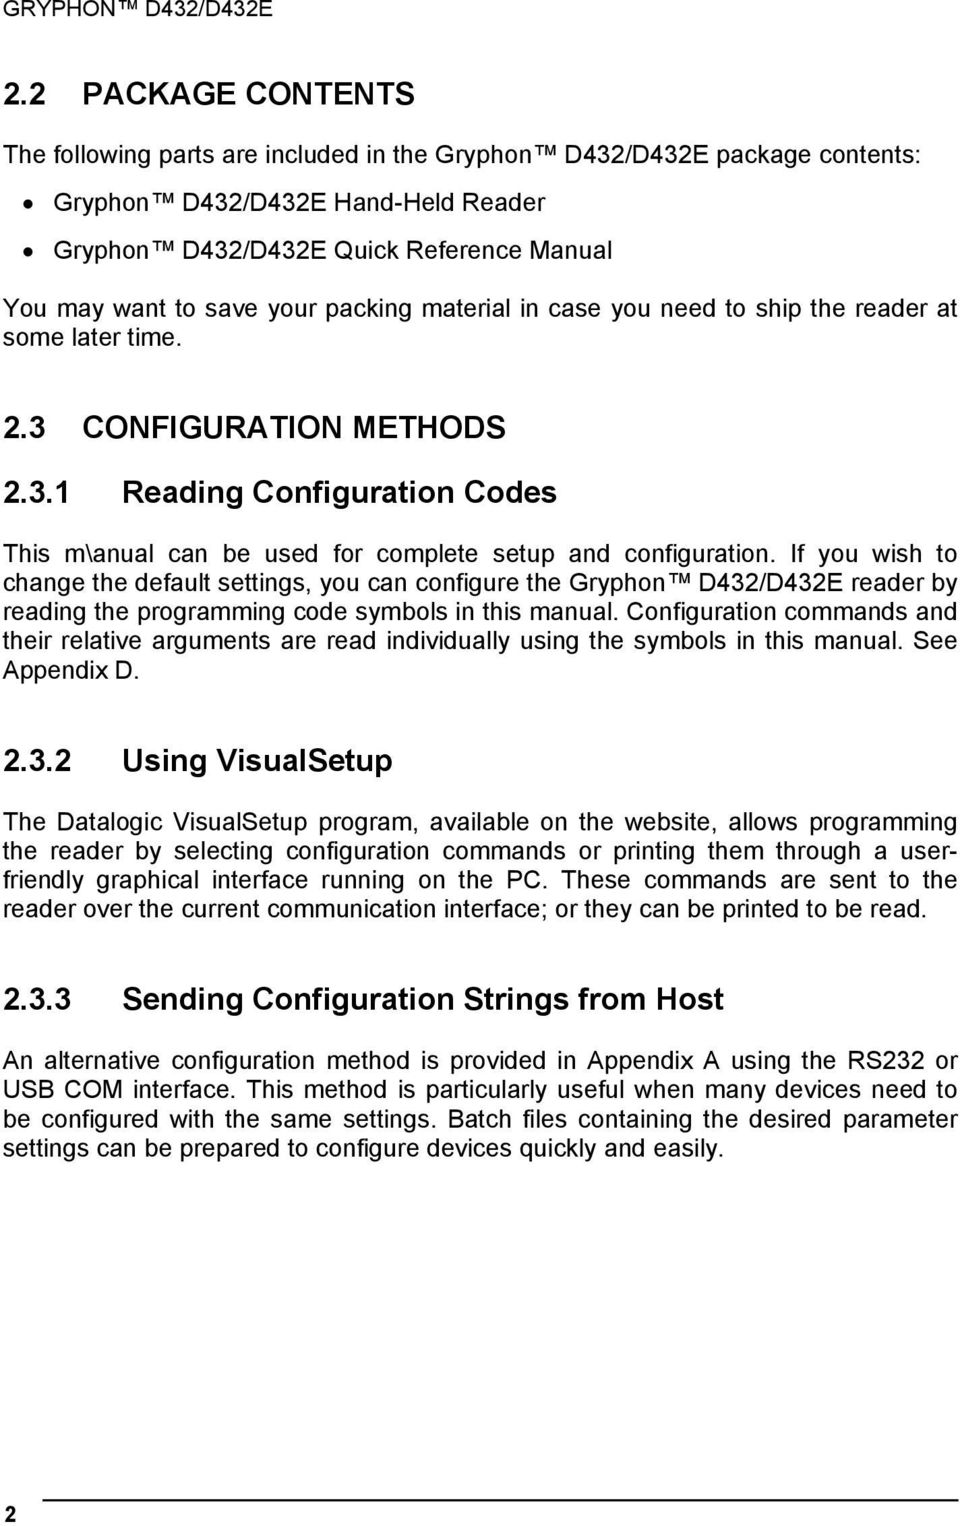 packing material in case you need to ship the reader at some later time. 2.3 CONFIGURATION METHODS 2.3.1 Reading Configuration Codes This m\anual can be used for complete setup and configuration.